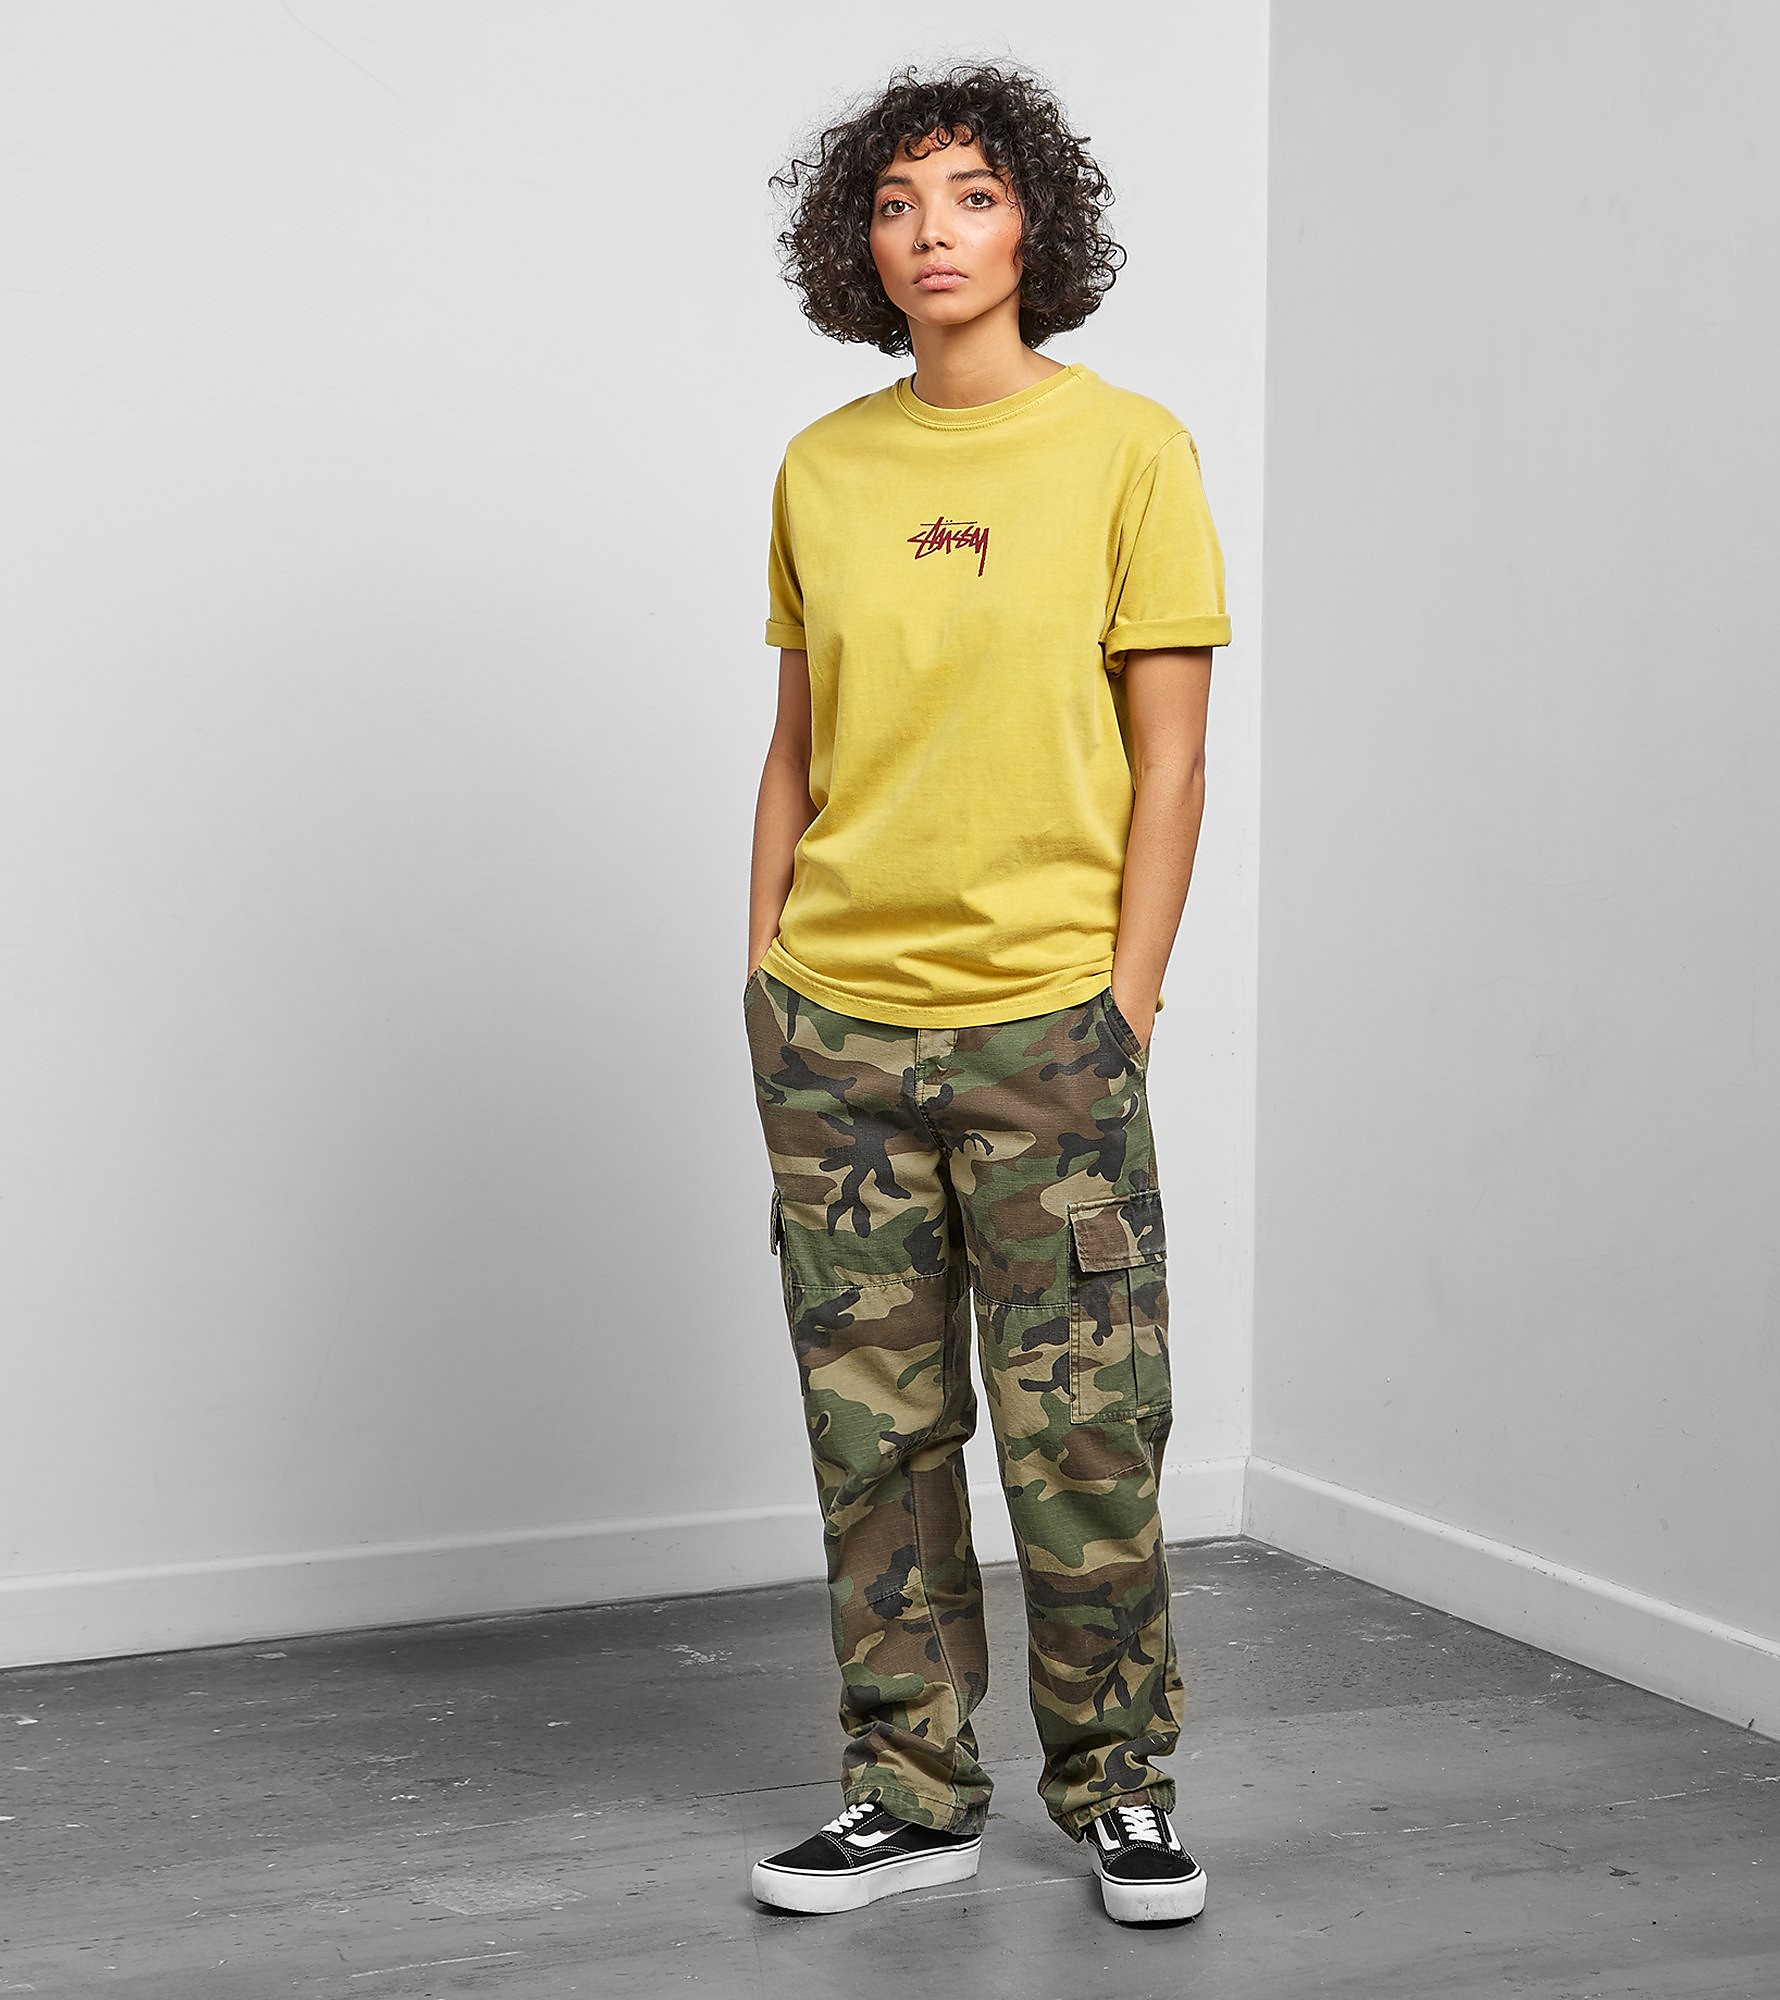 Stussy Stock Dyed T-Shirt